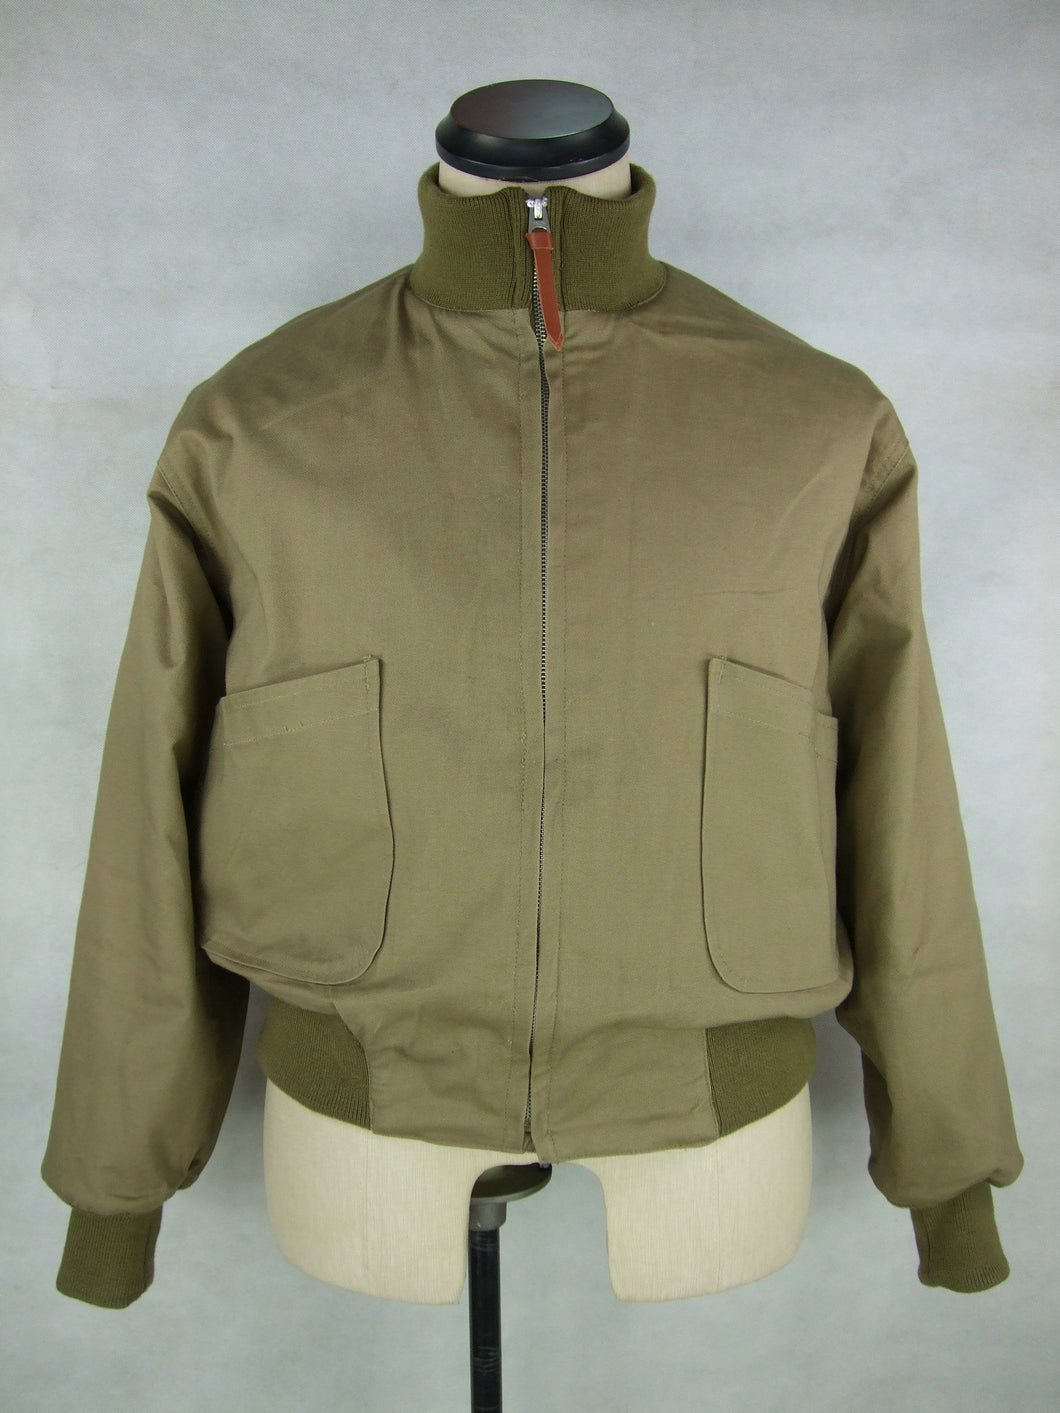 WW2 US Tanker Jacket 1st Pattern Fury